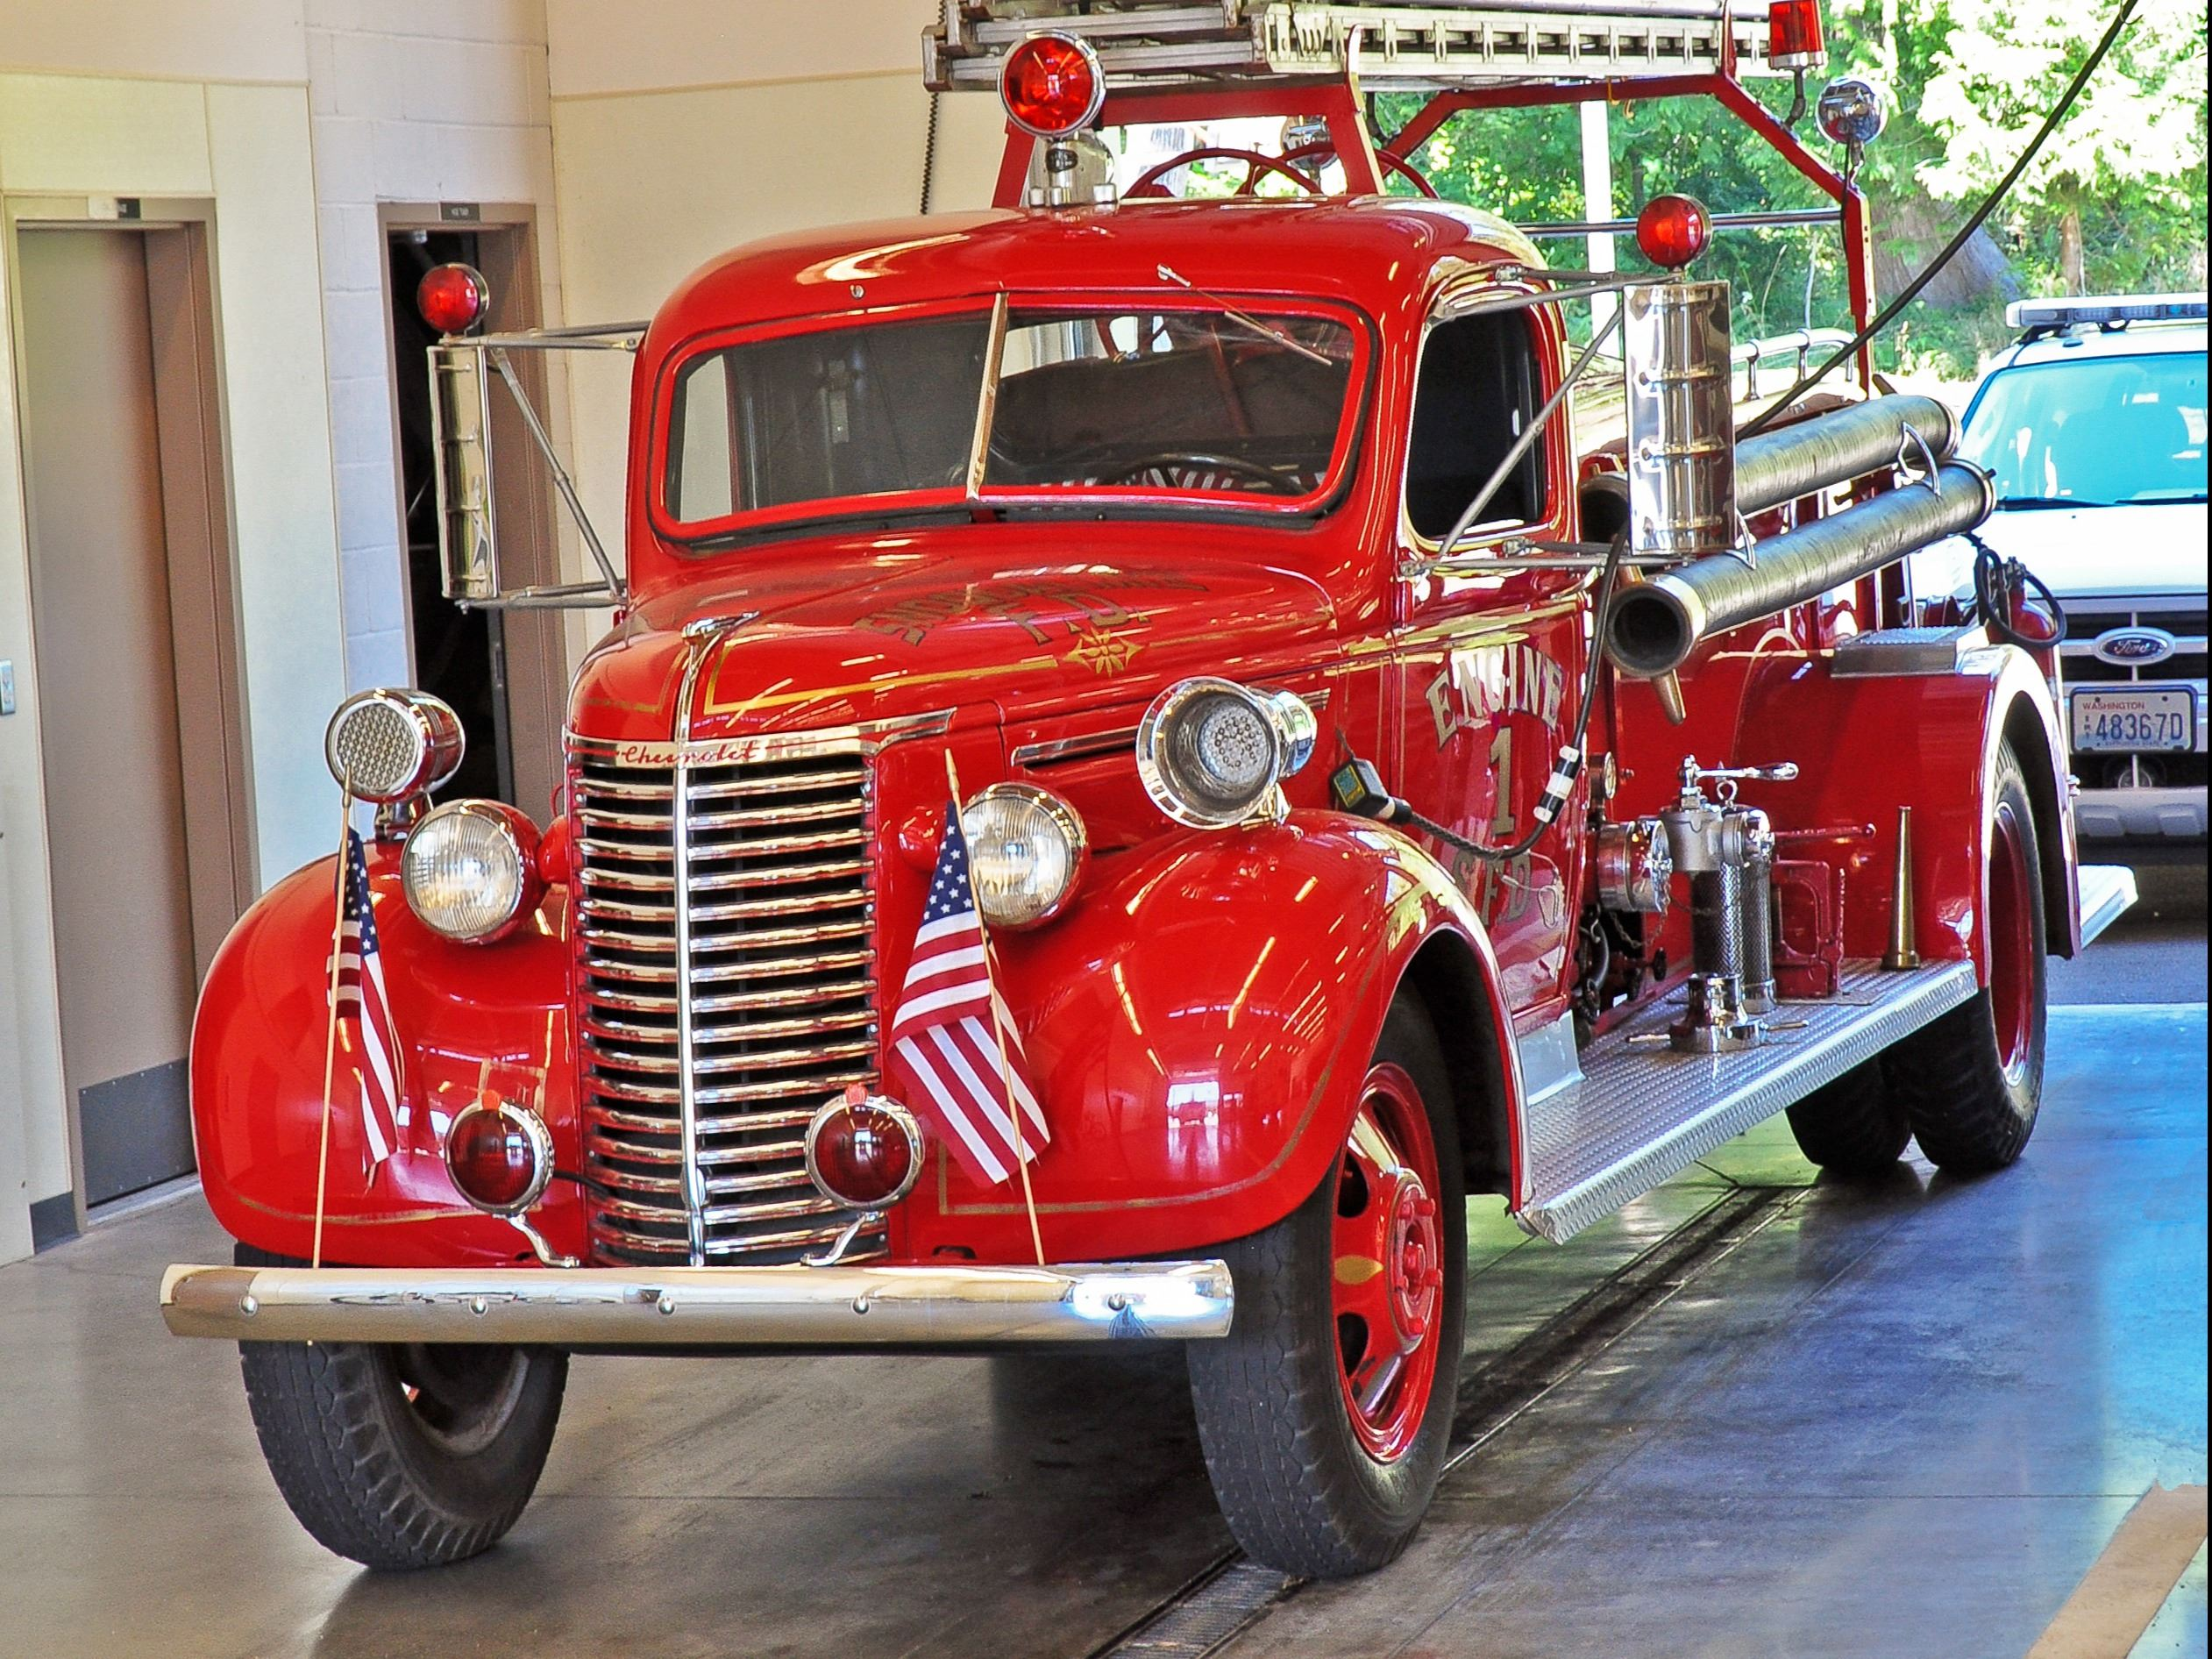 This is a photo of Snoqualmie Fire Truck No. 1.